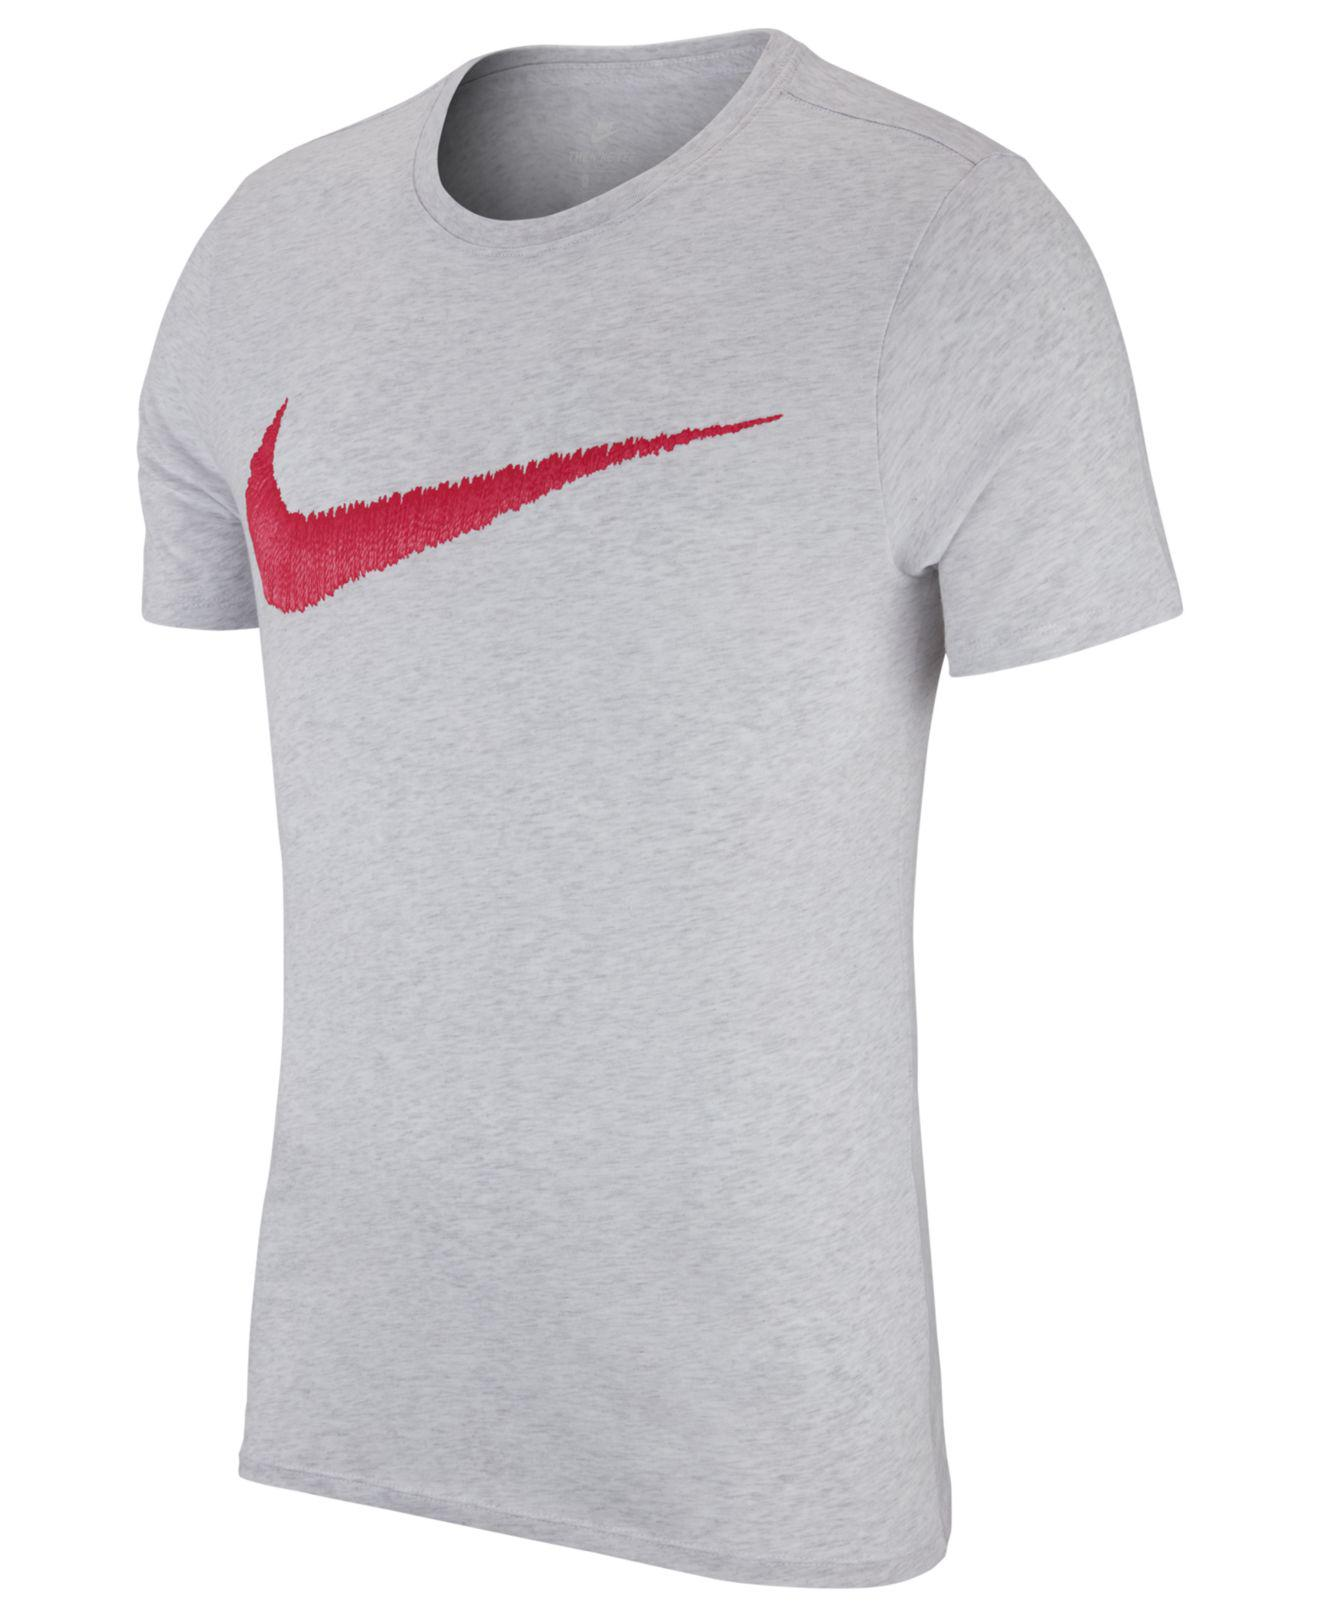 d6300f6d9504 Lyst - Nike Hangtag Swoosh T-shirt in Gray for Men